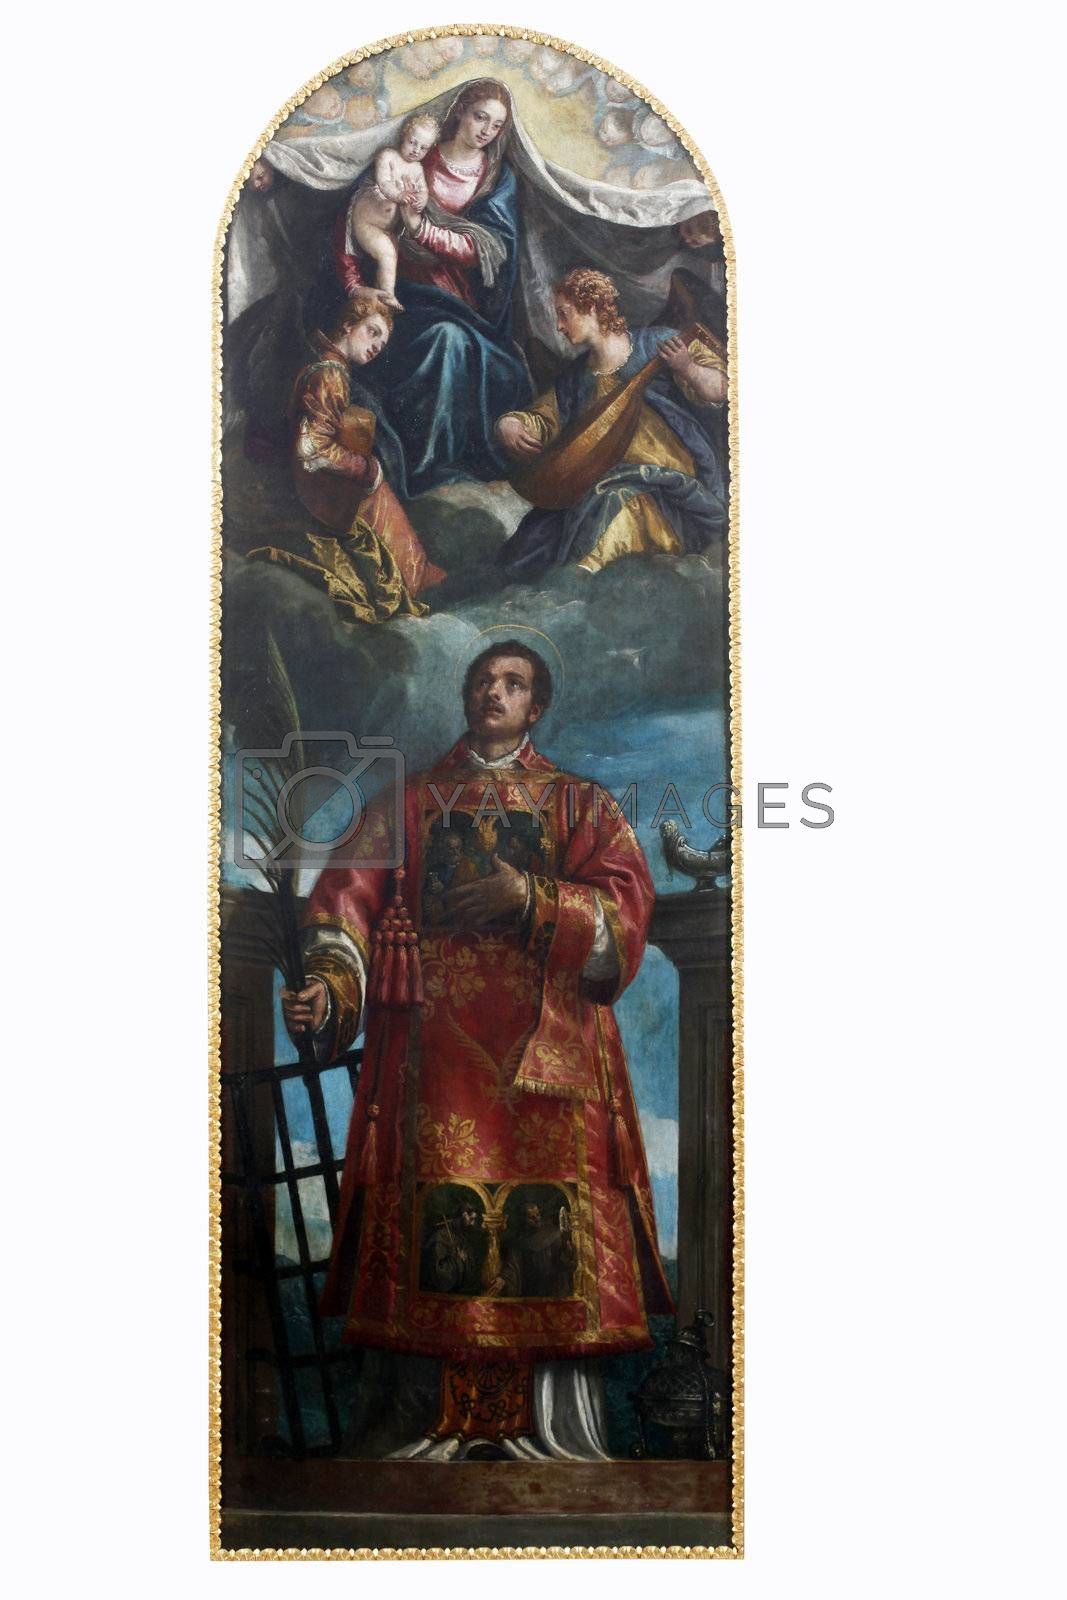 ZAGREB, CROATIA - DECEMBER 12: Paolo Veronese: Saint Lawrence with the Virgin, Christ and angels, exhibited at the Great Masters renesnse in Croatia, opened December 12, 2011. in Zagreb, Croatia